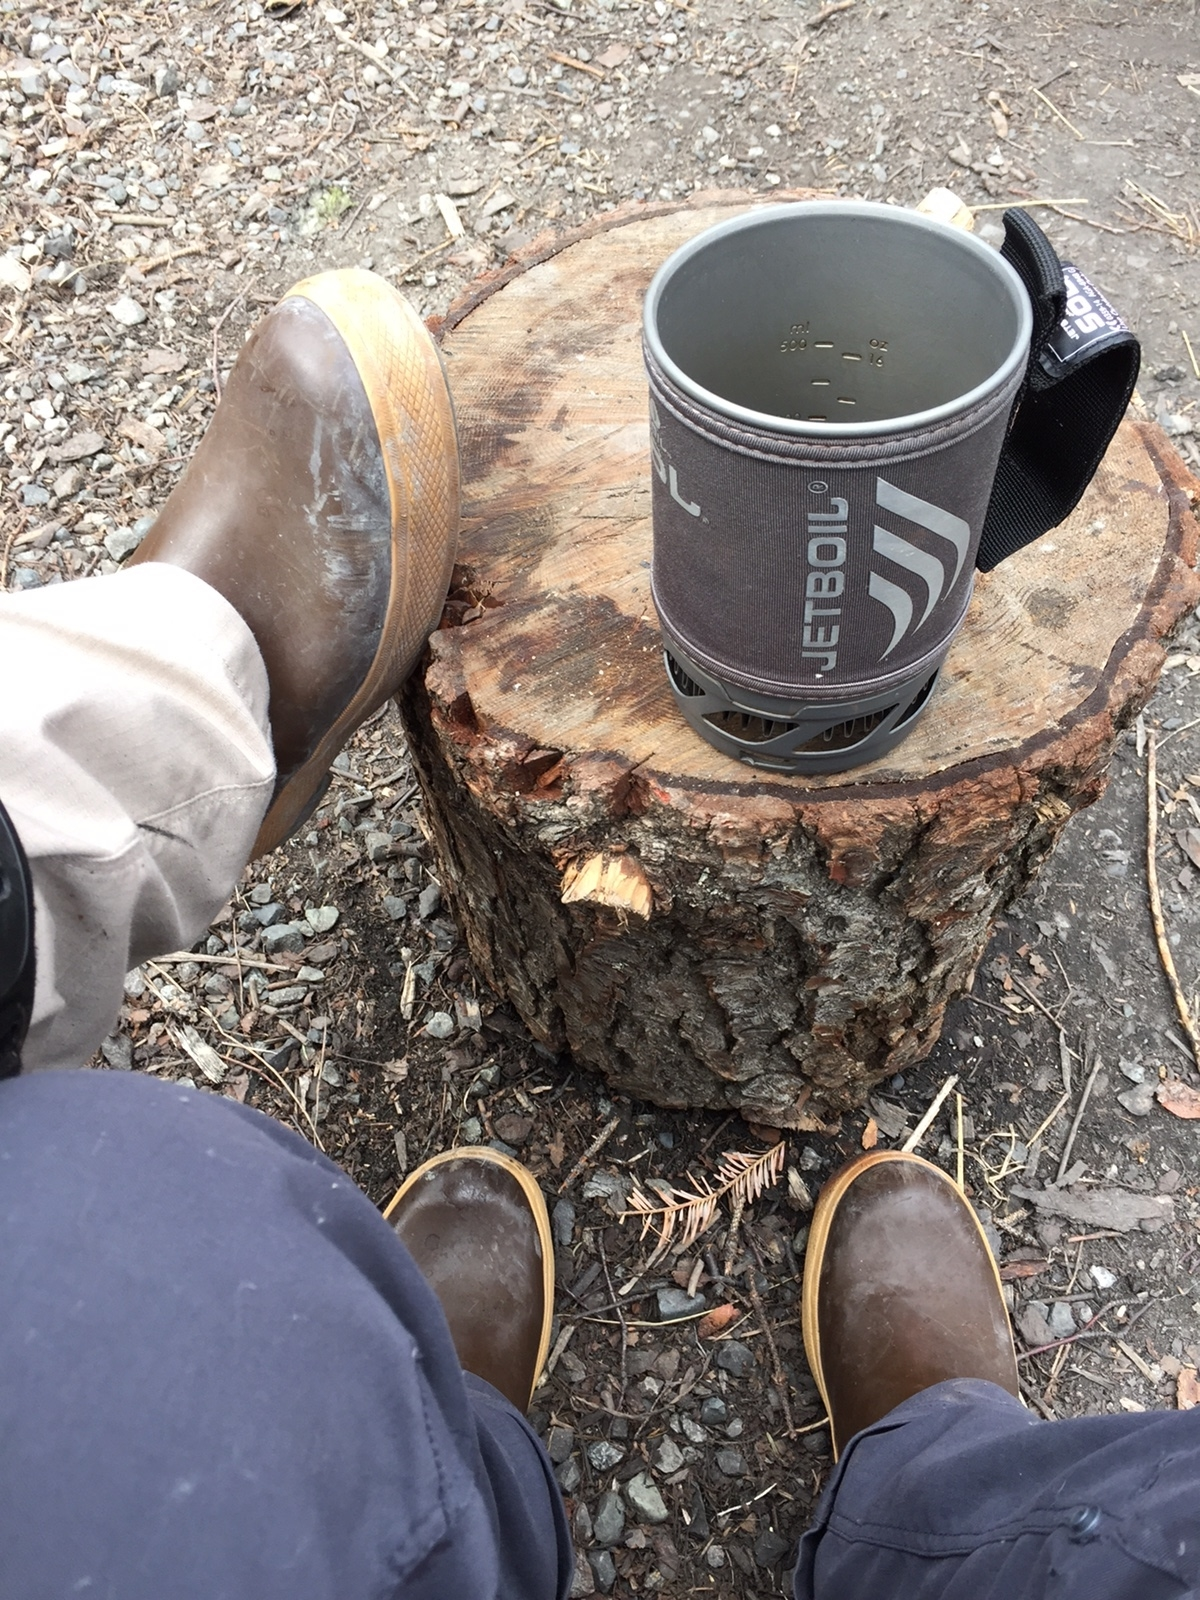 Just being Alaskan as fuck in our Xtratuff boots with our Jetboil